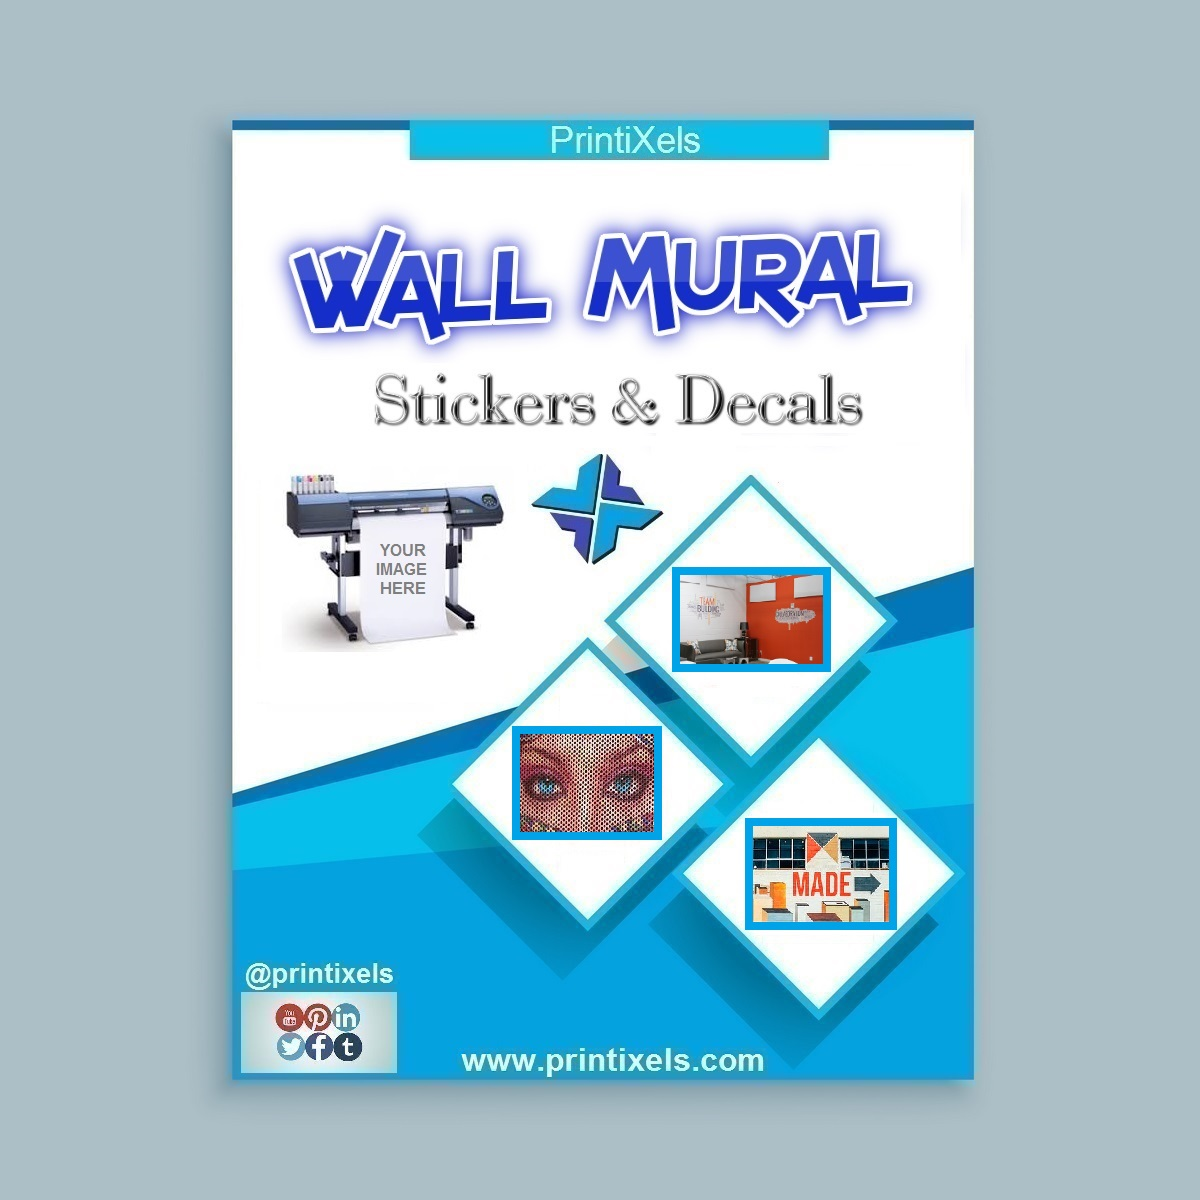 Wall Mural Stickers & Decals - Printing & Installation